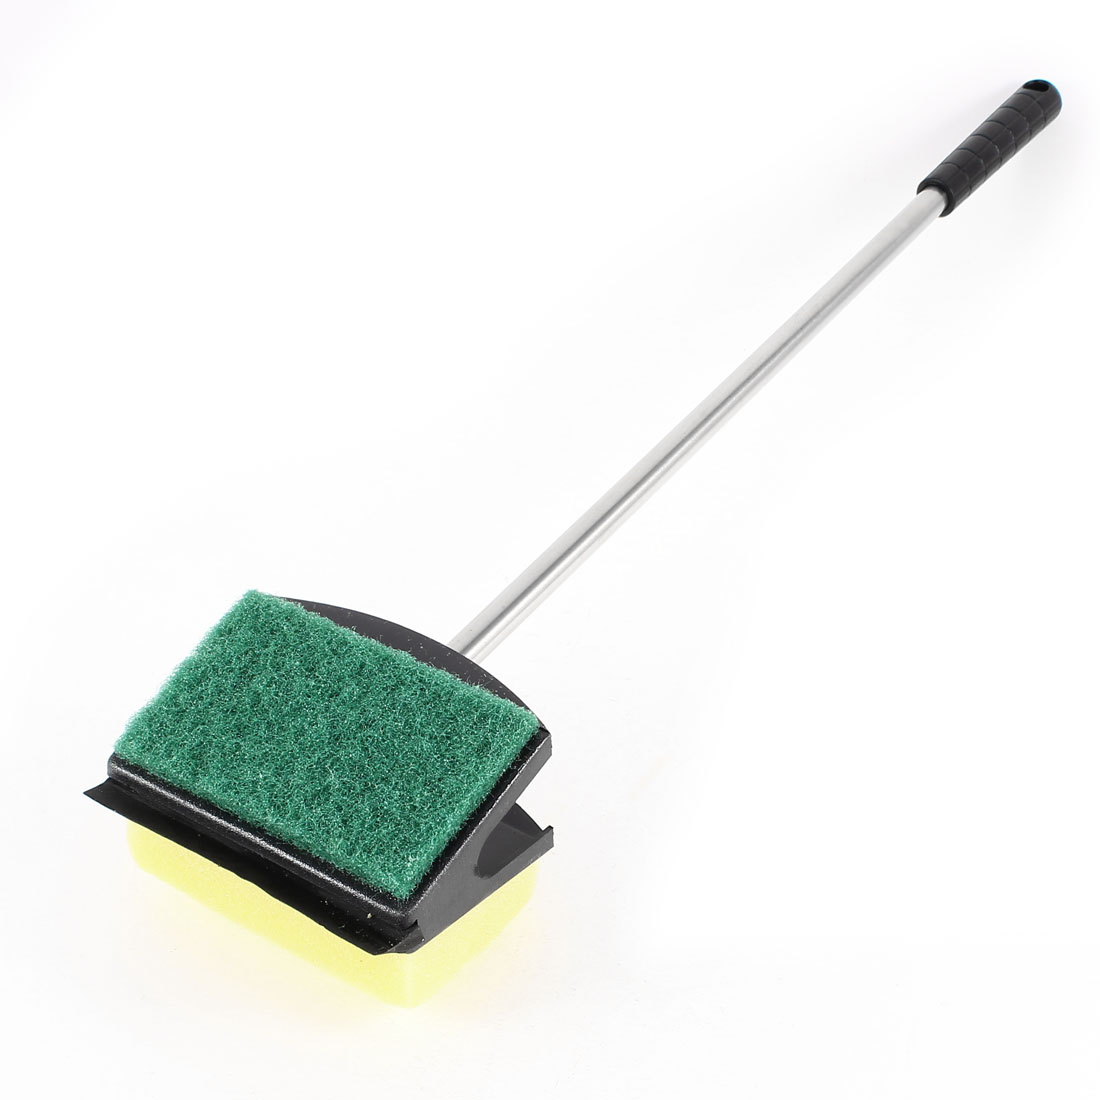 Metal Handle Dual Sides Soft Sponge Cleaning Brush for Fish Tank